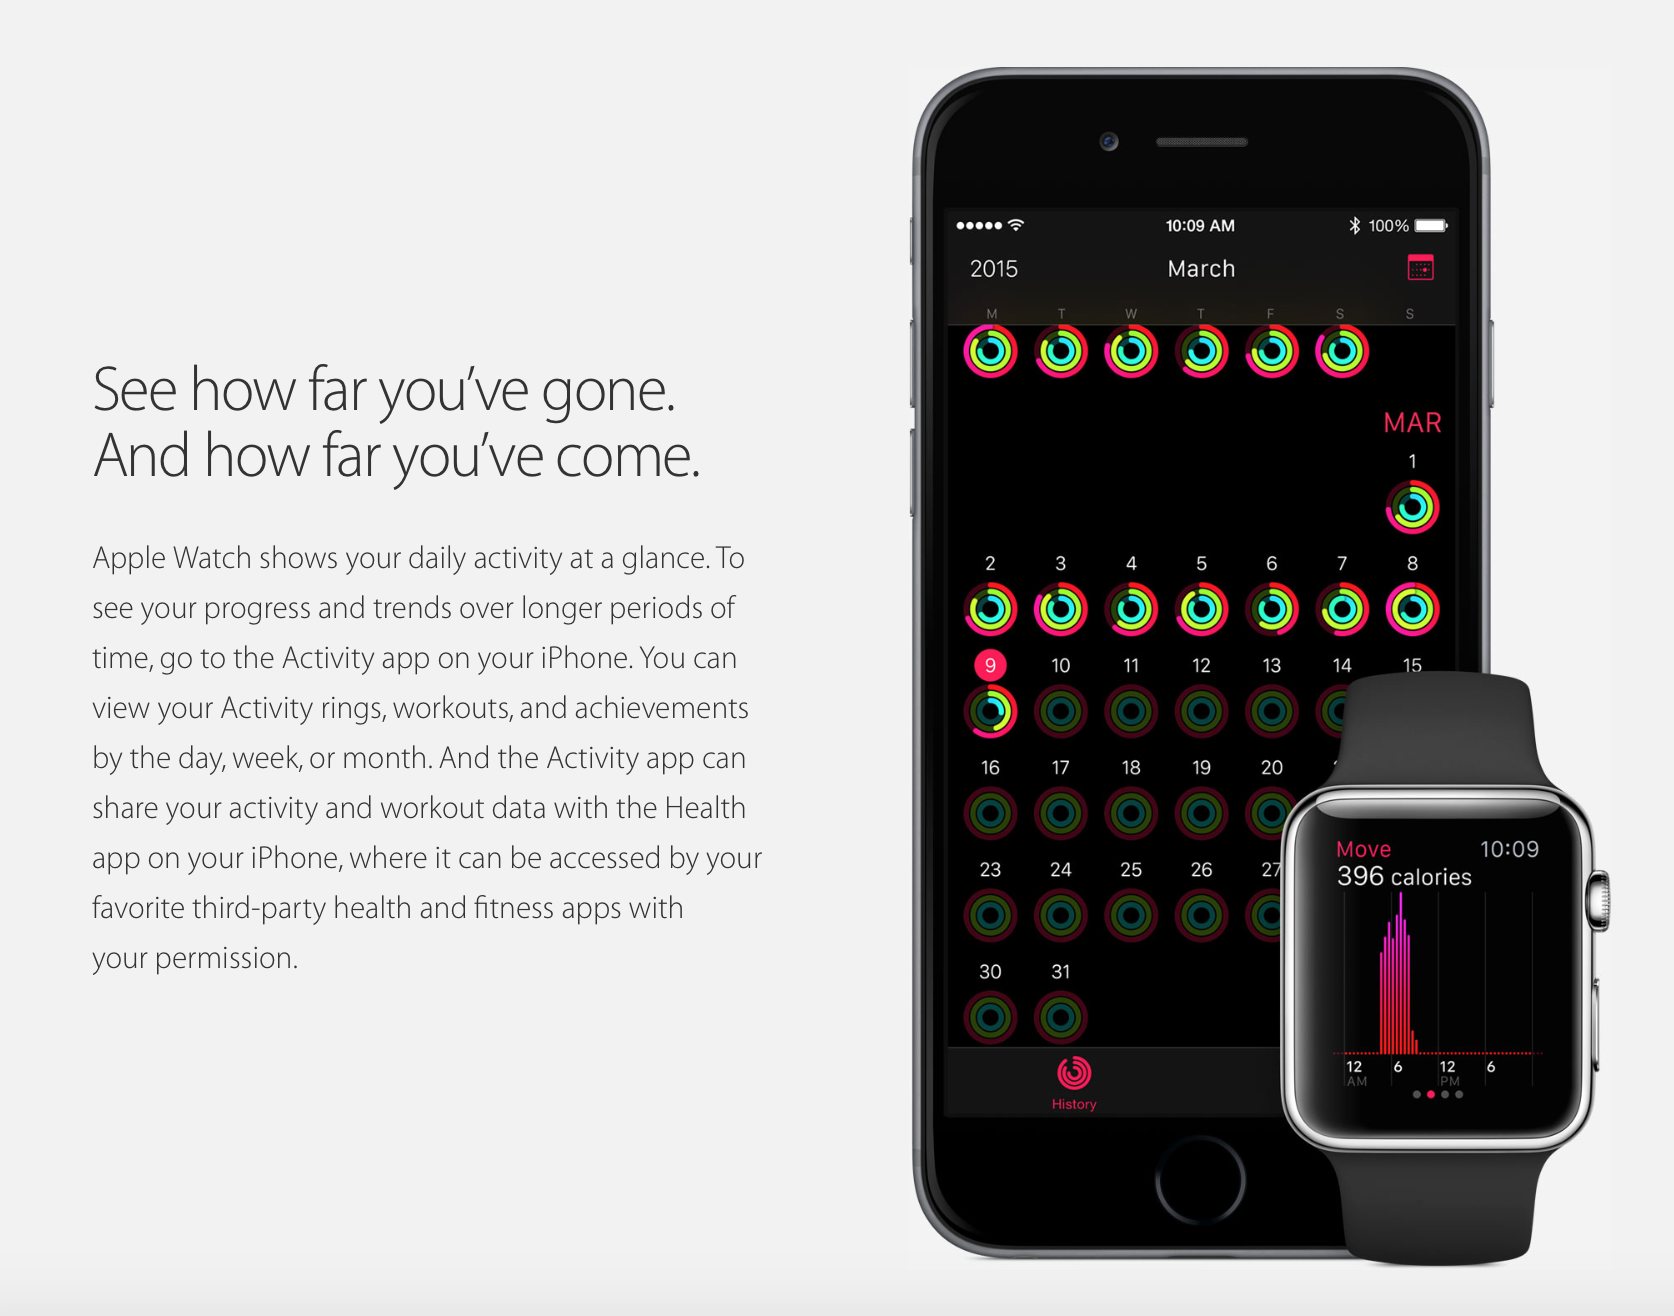 A new Activity app appears when you pair an Apple Watch with your iPhone